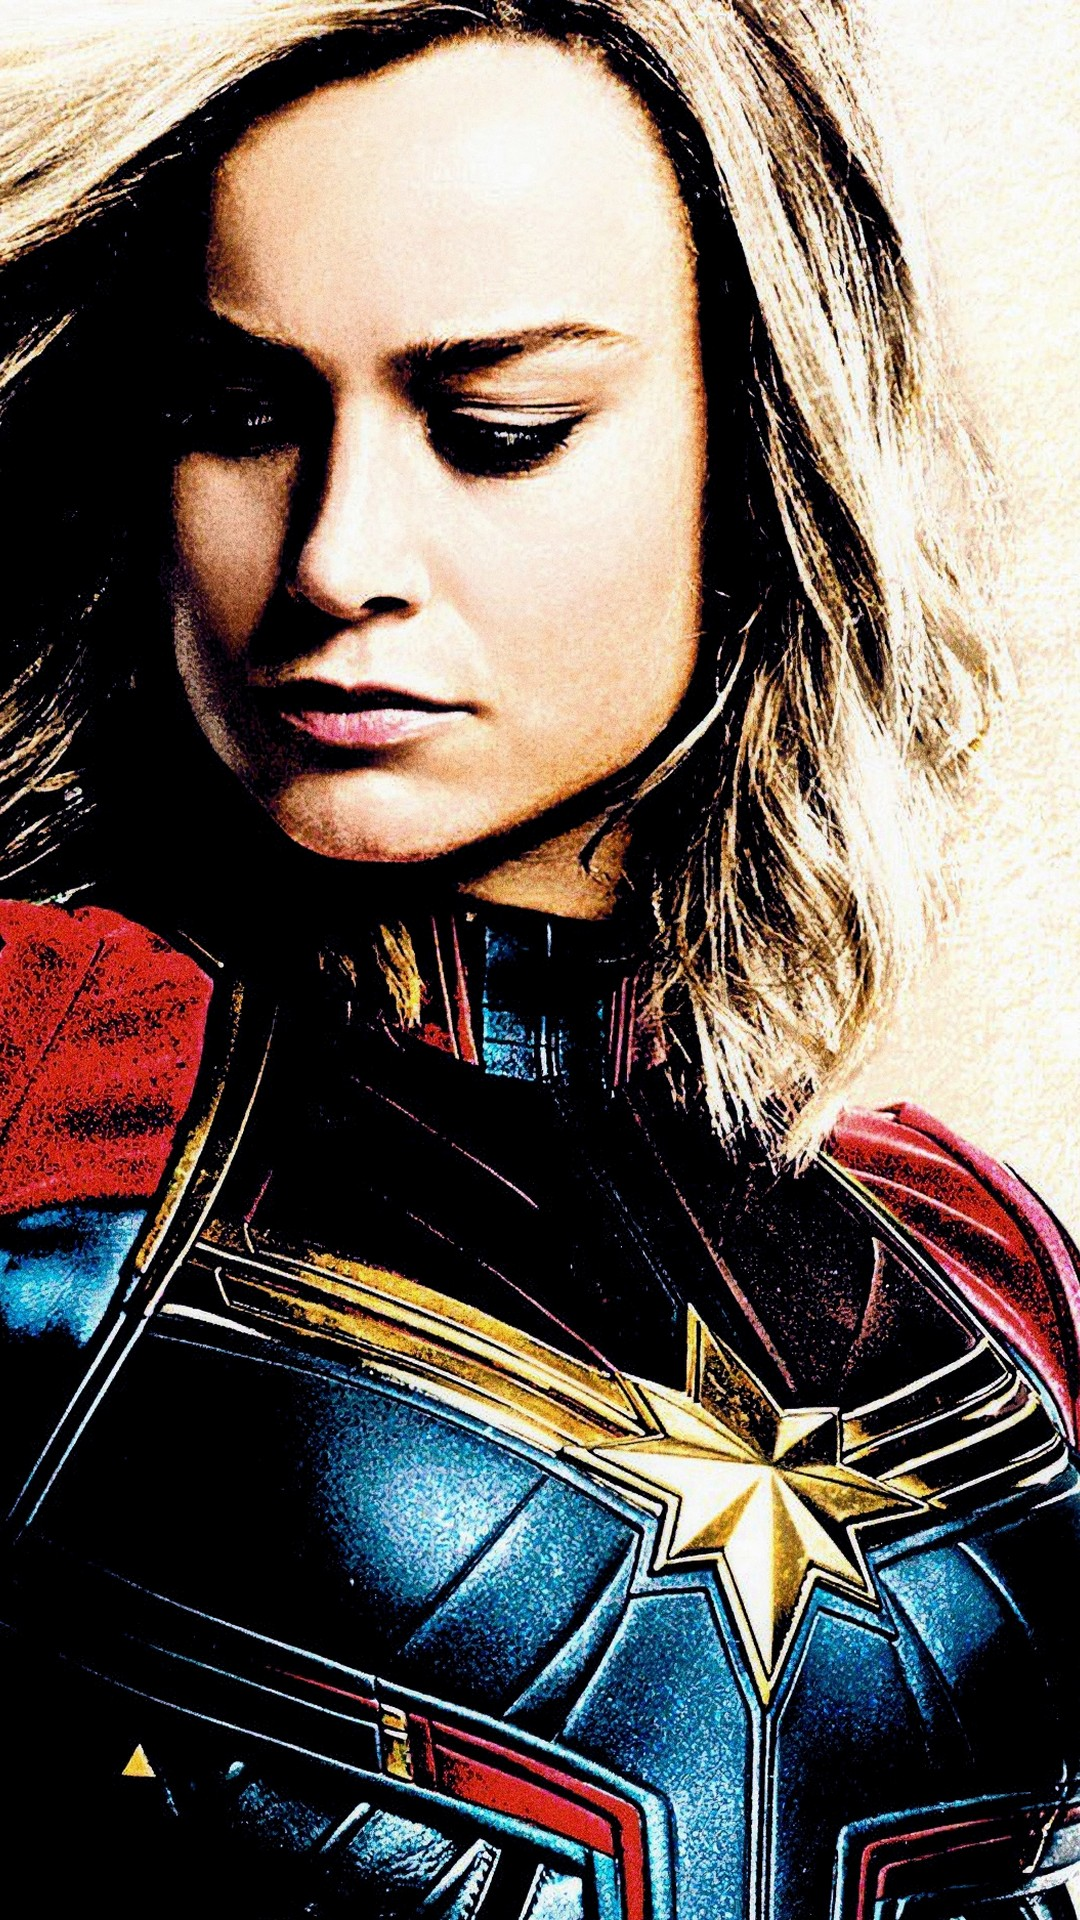 Iphone X Wallpaper Captain Marvel With High-resolution - Best Hd Wallpaper Of Captain Marvel , HD Wallpaper & Backgrounds